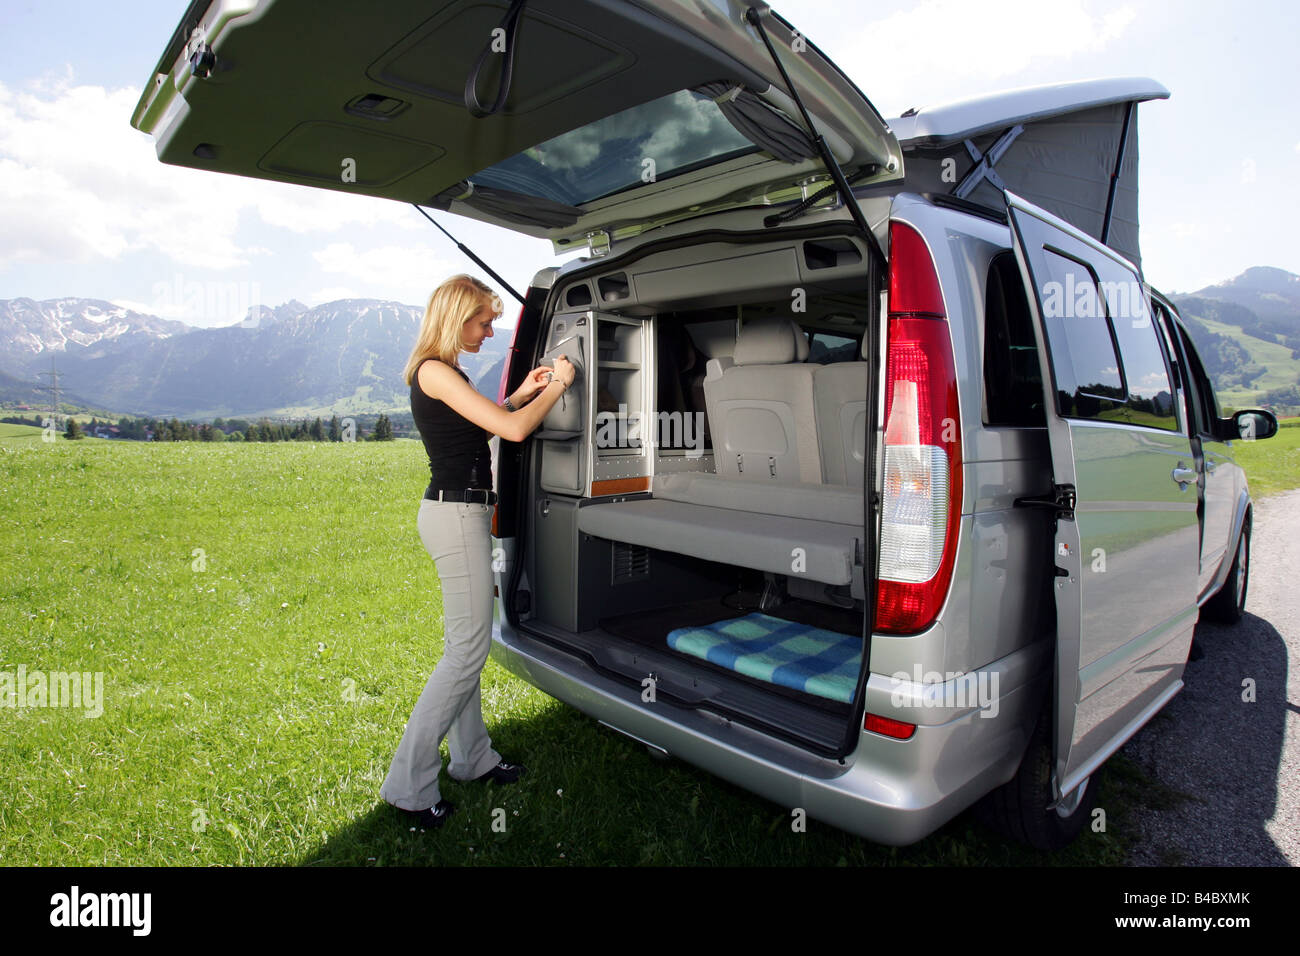 mercedes marco polo camper van camping. Black Bedroom Furniture Sets. Home Design Ideas